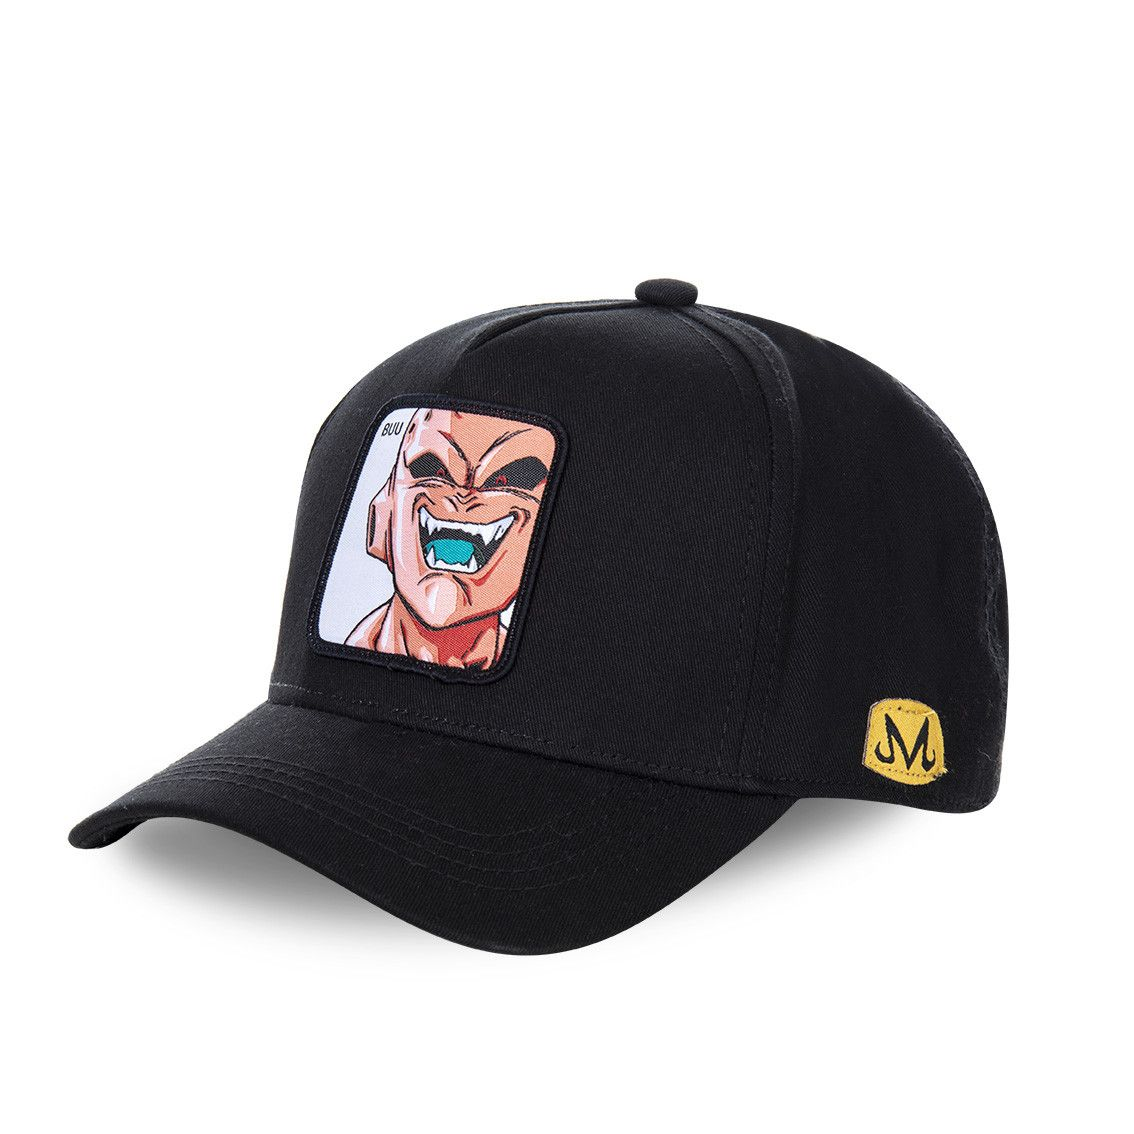 Casquette capslab dragon ball z mâjin buu noir (photo)